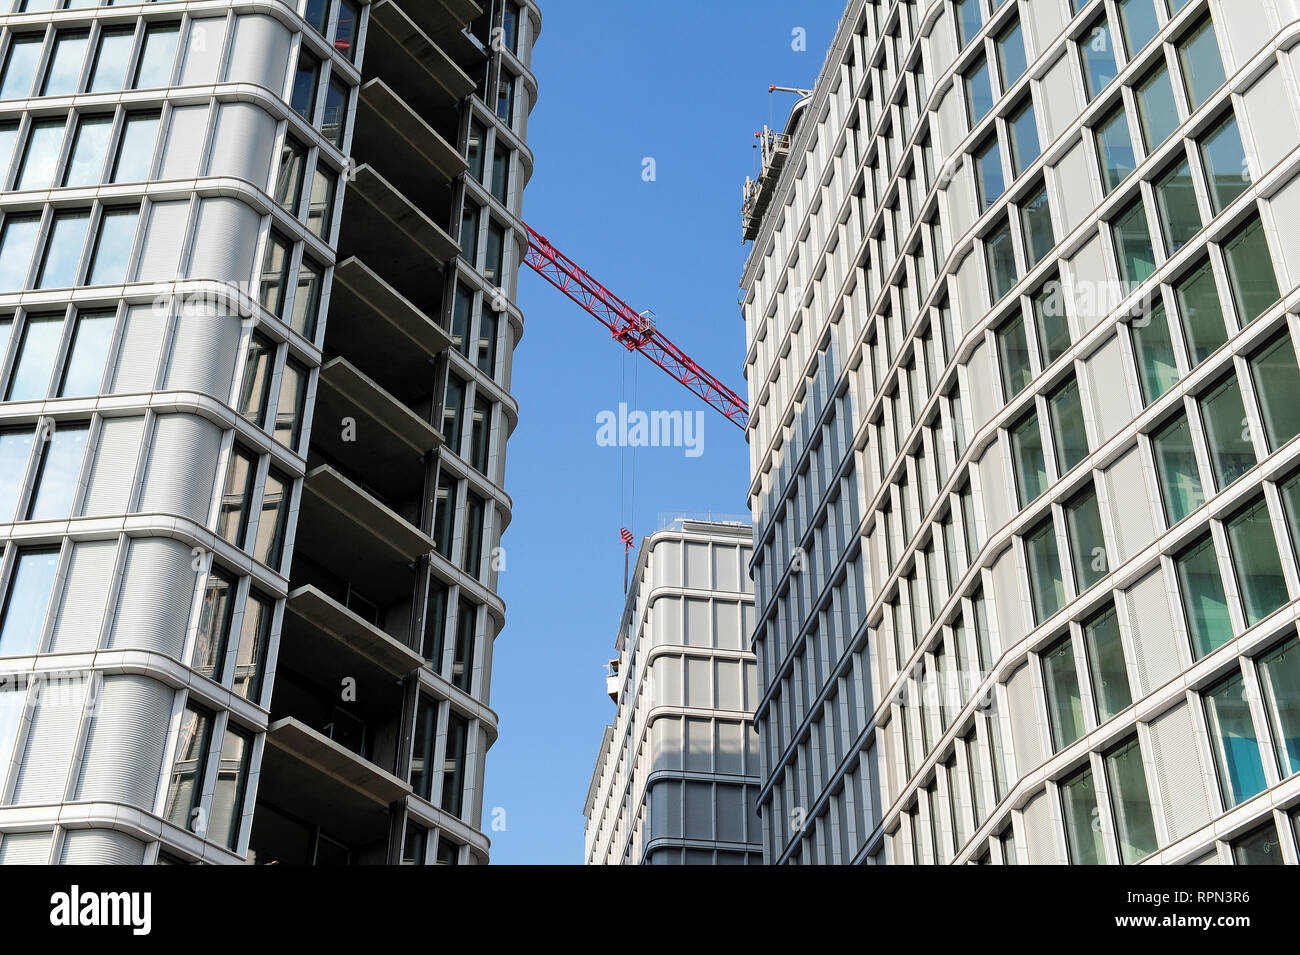 The Park am Belvedere, a hotel and residential complex designed by Italian architect Renzo Piano and currently in the process of being finished - Stock Image